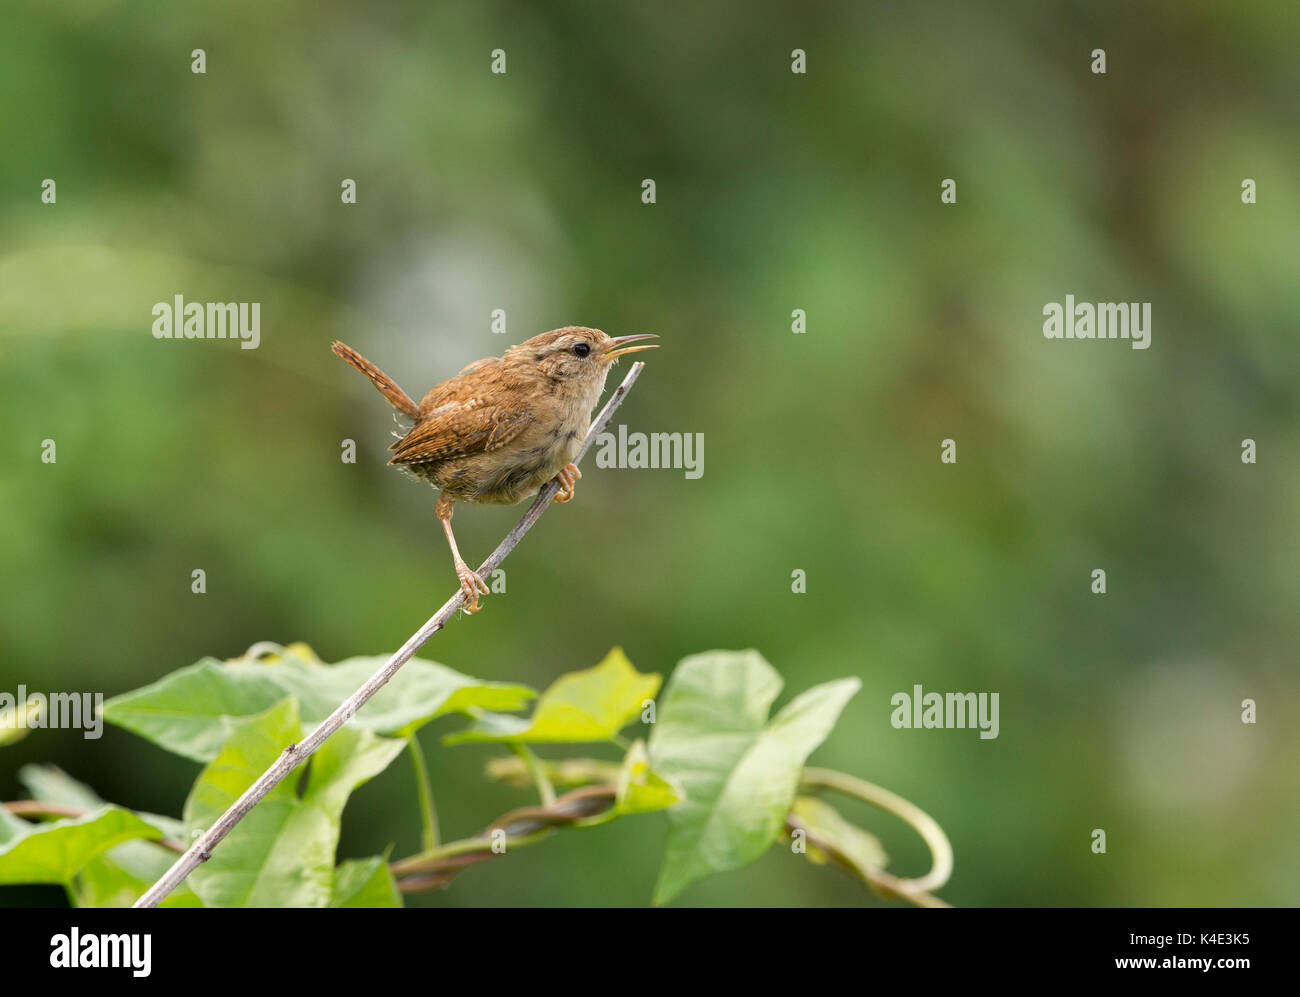 Wren, Troglodytes troglodytes, single adult singing on twig, Worcestershire, UK - Stock Image